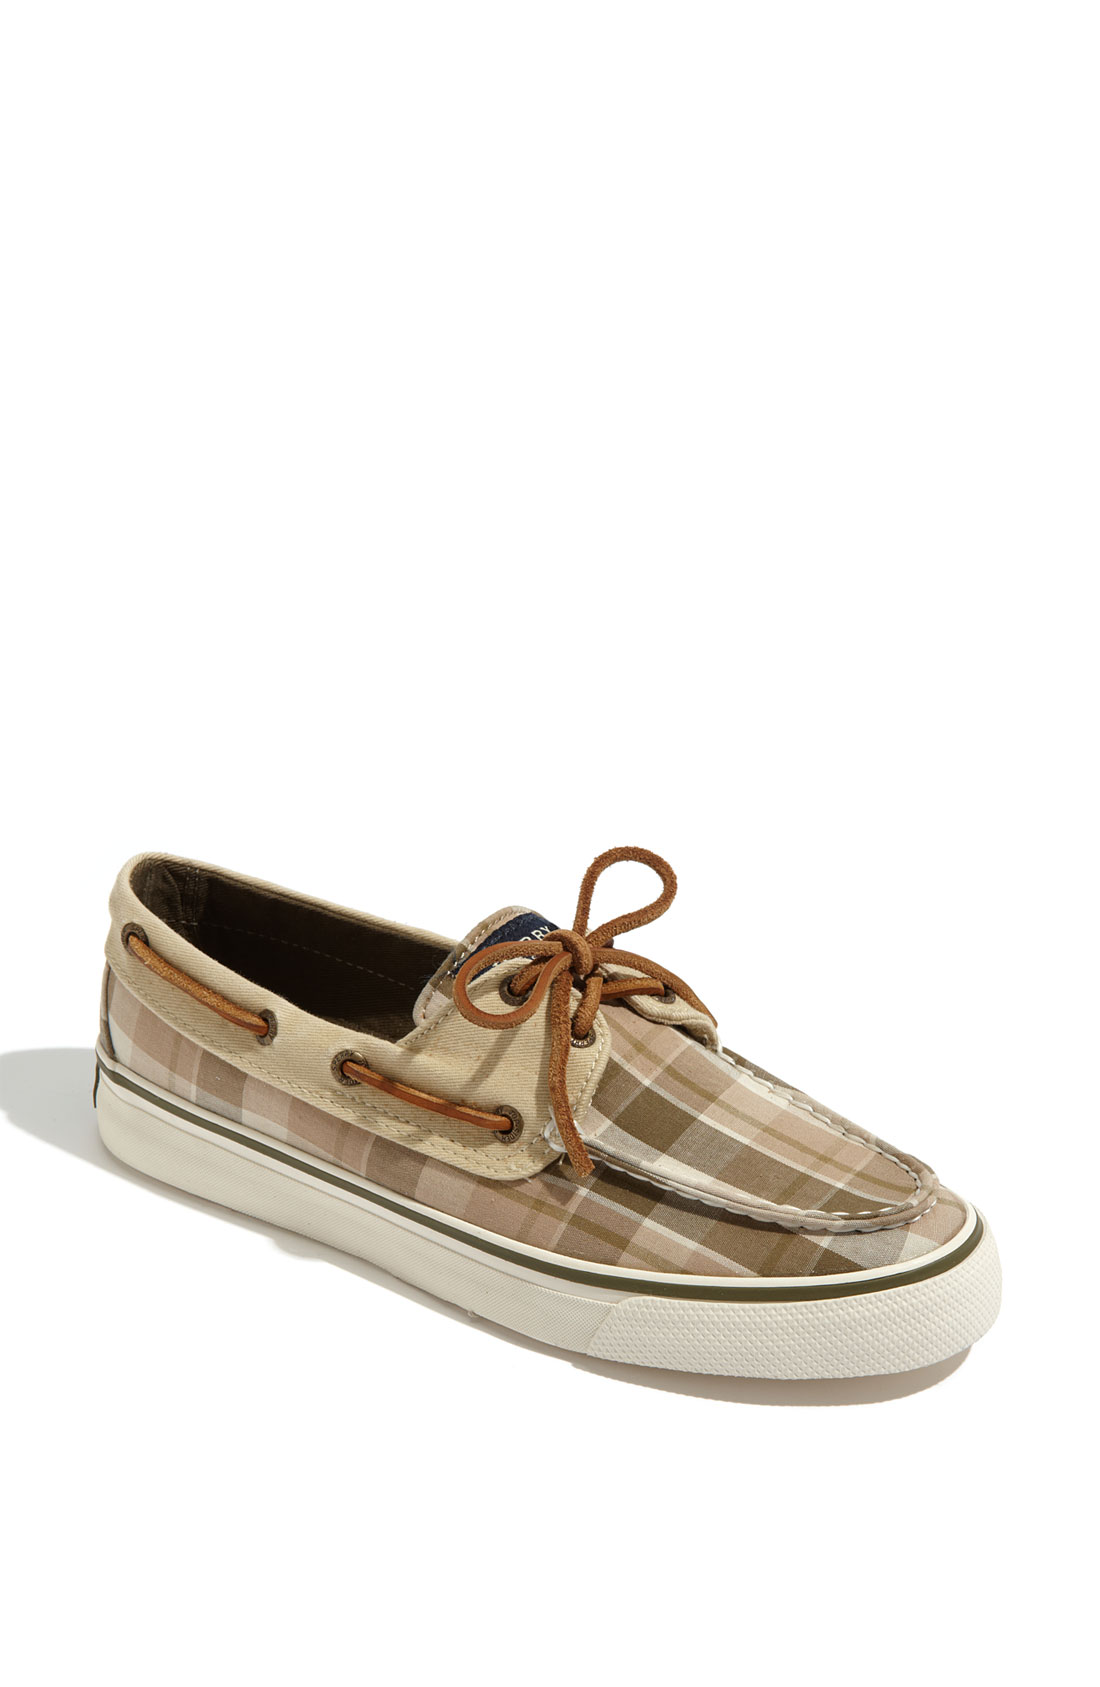 Womens Sperry Top Sider Bluefish Boat Shoe Tan